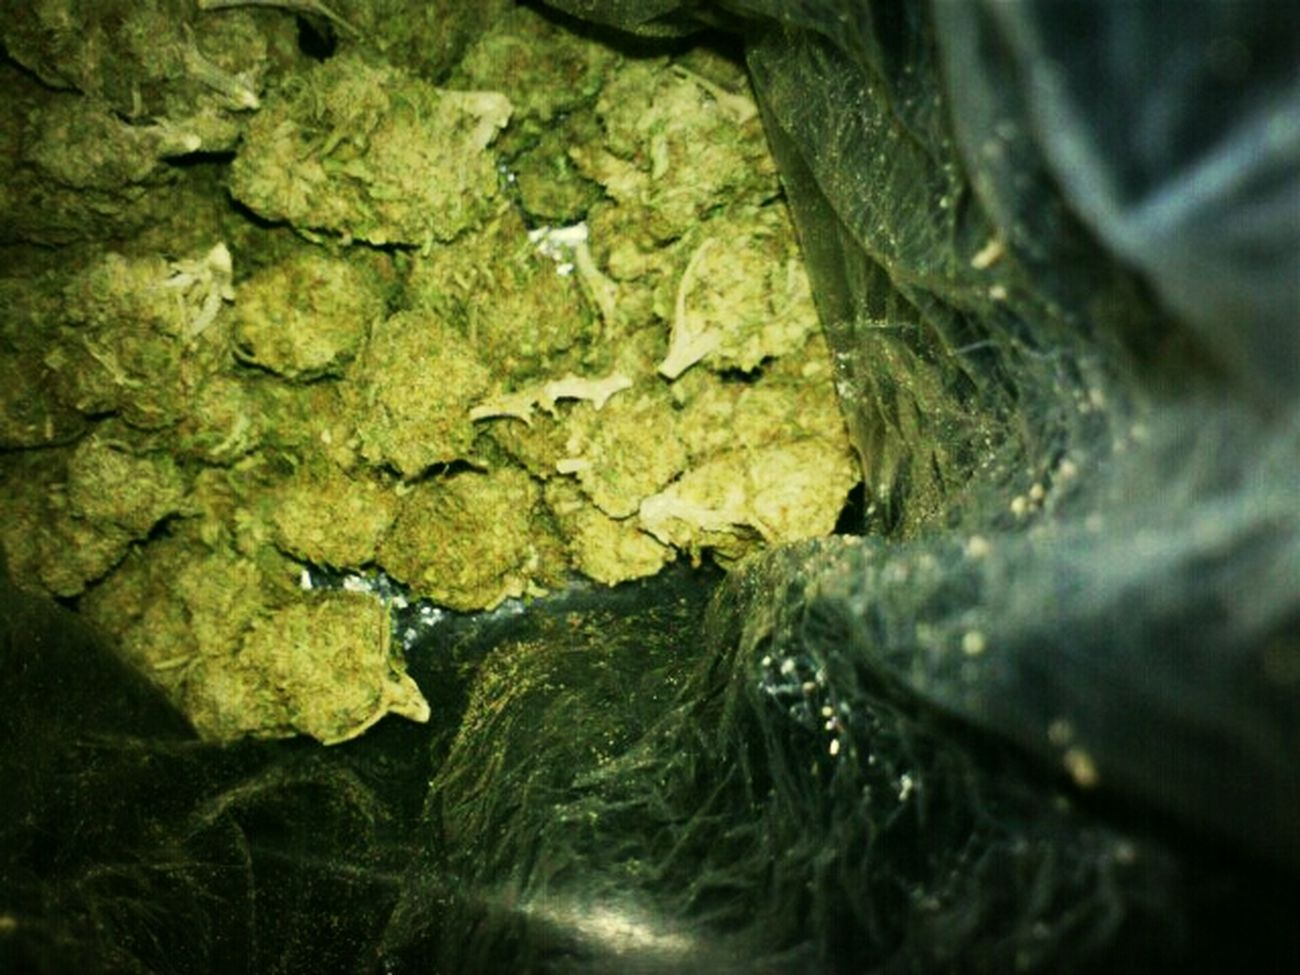 Its day like this that keepah smile on my face an swishers in my life dope!! stupid